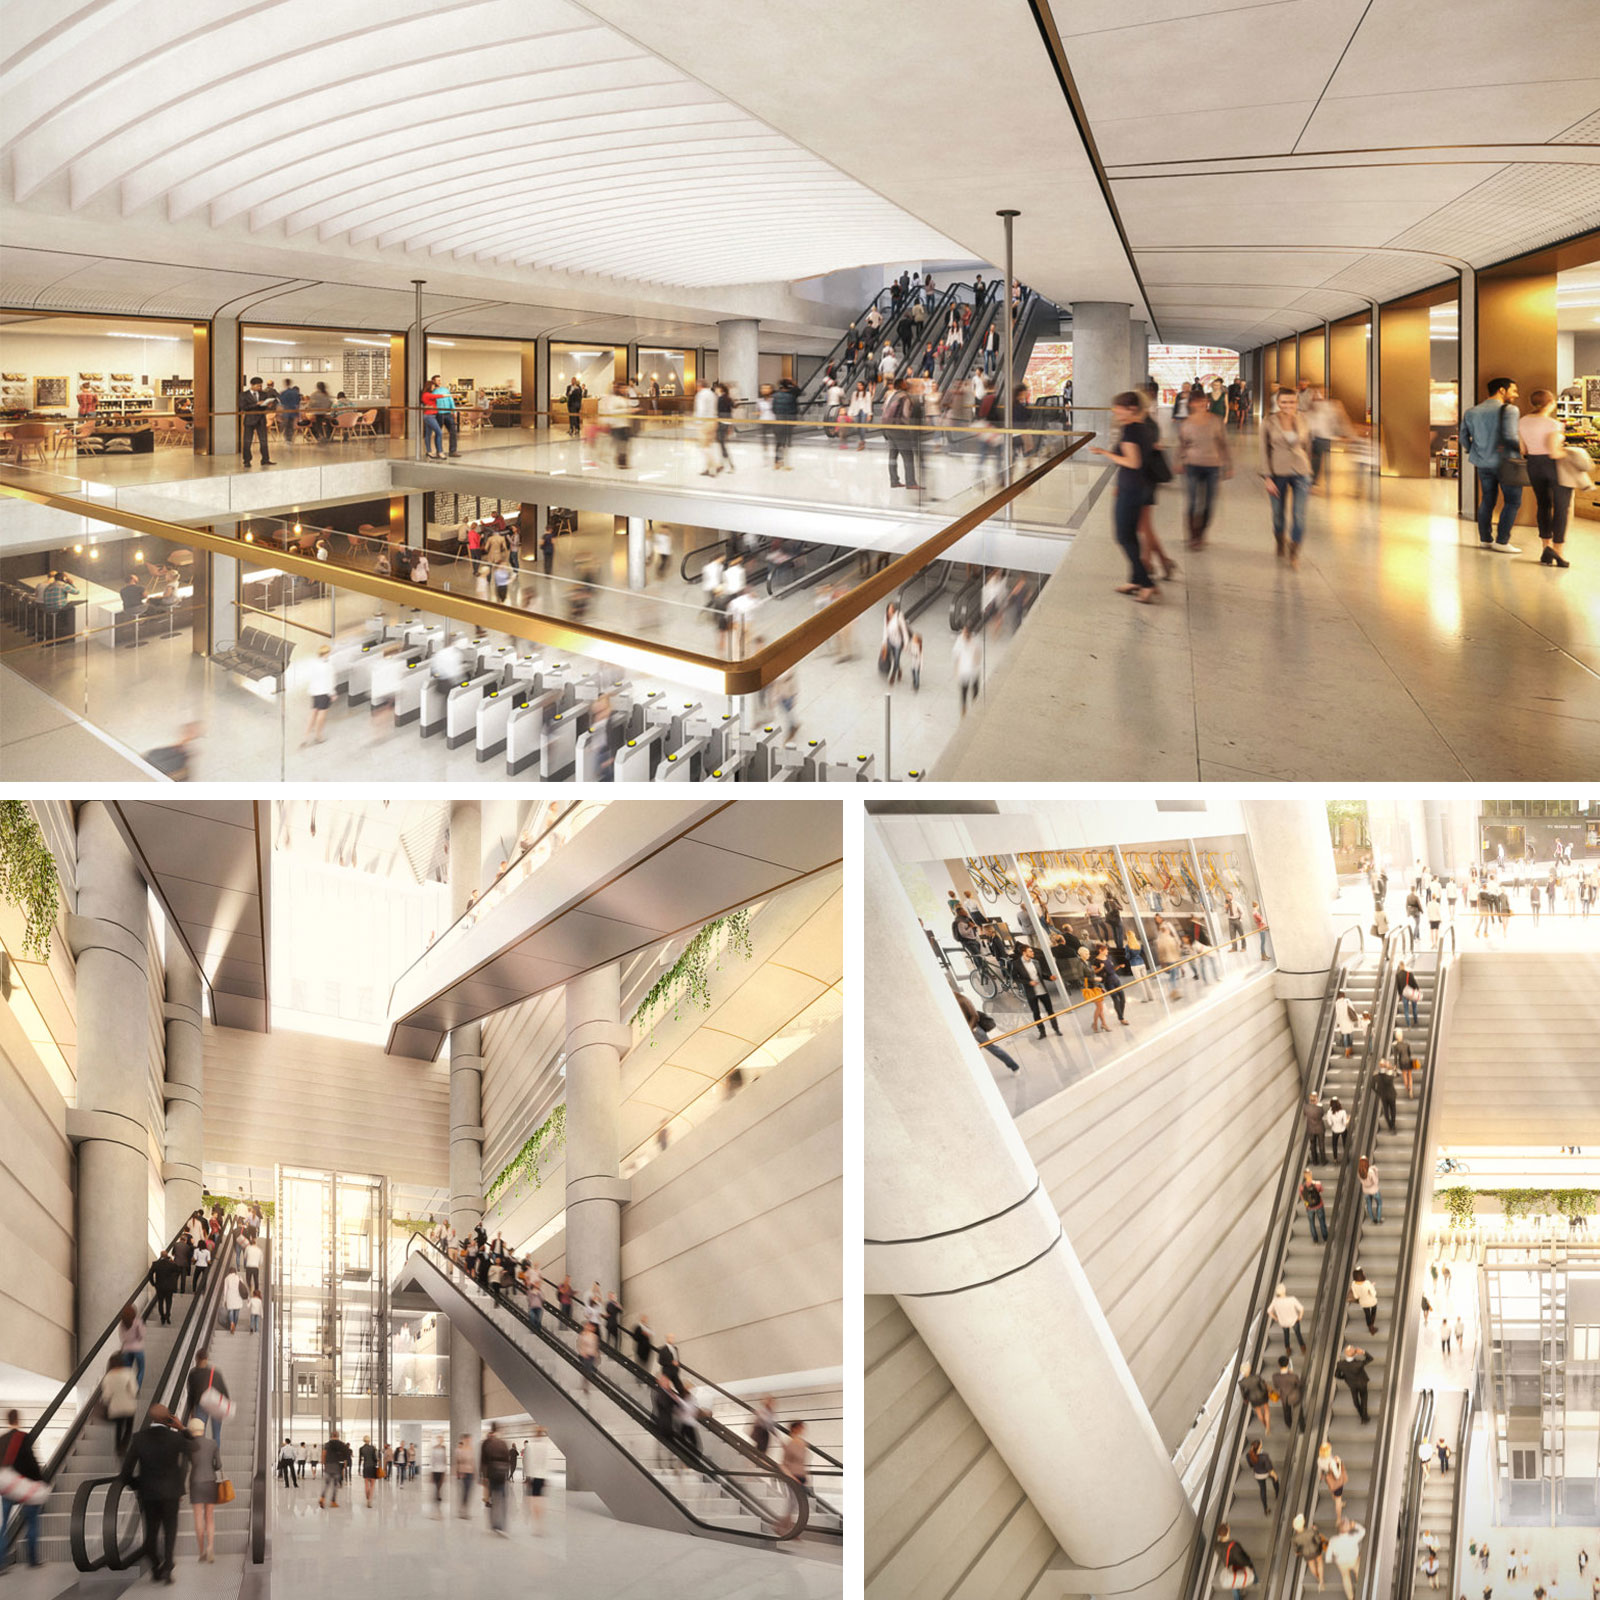 Macquarie Group has appointed Lendlease as its design and construction contractor to deliver the new station, retail space, pedestrian connections and the buildings above the station.